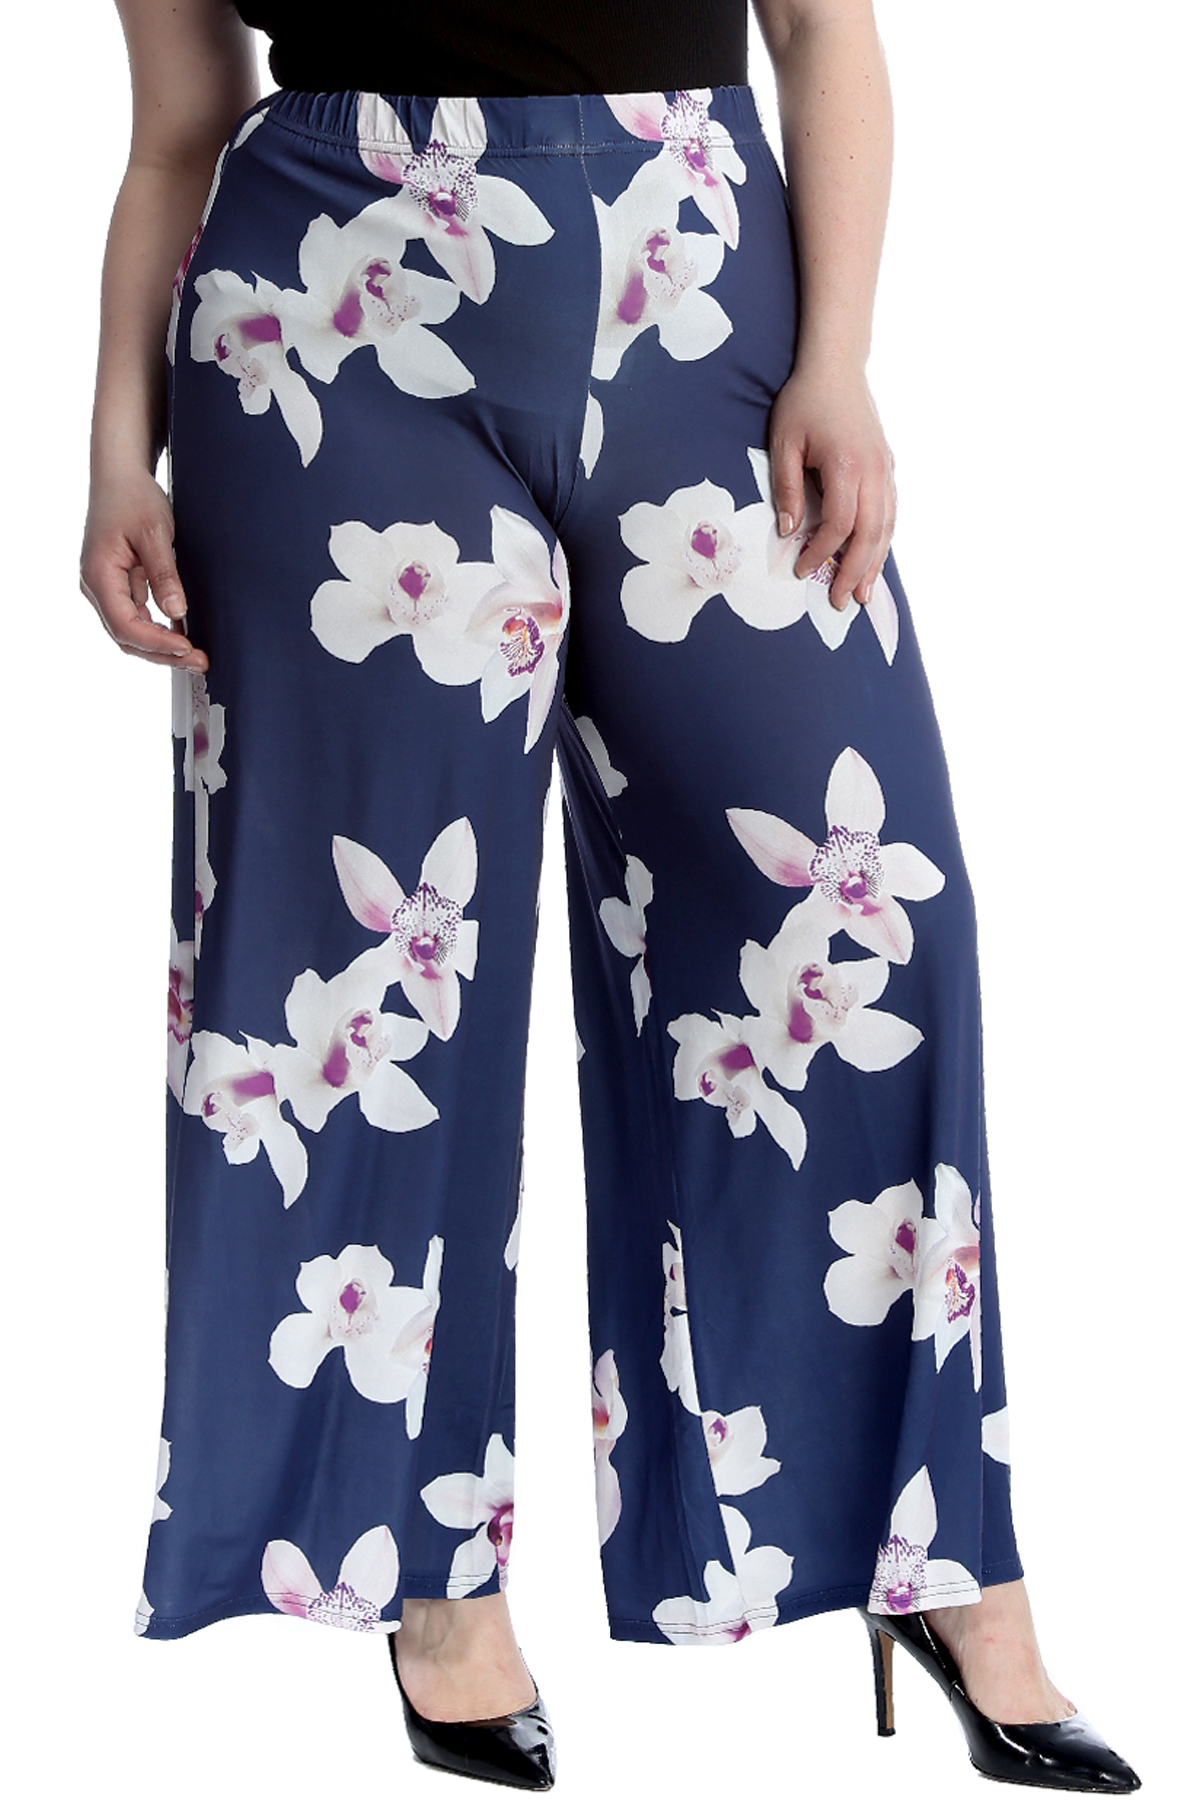 Womens Printed Ladies Palazzo Narrow/&Wide Leg Flare Full Length Trousers Pants